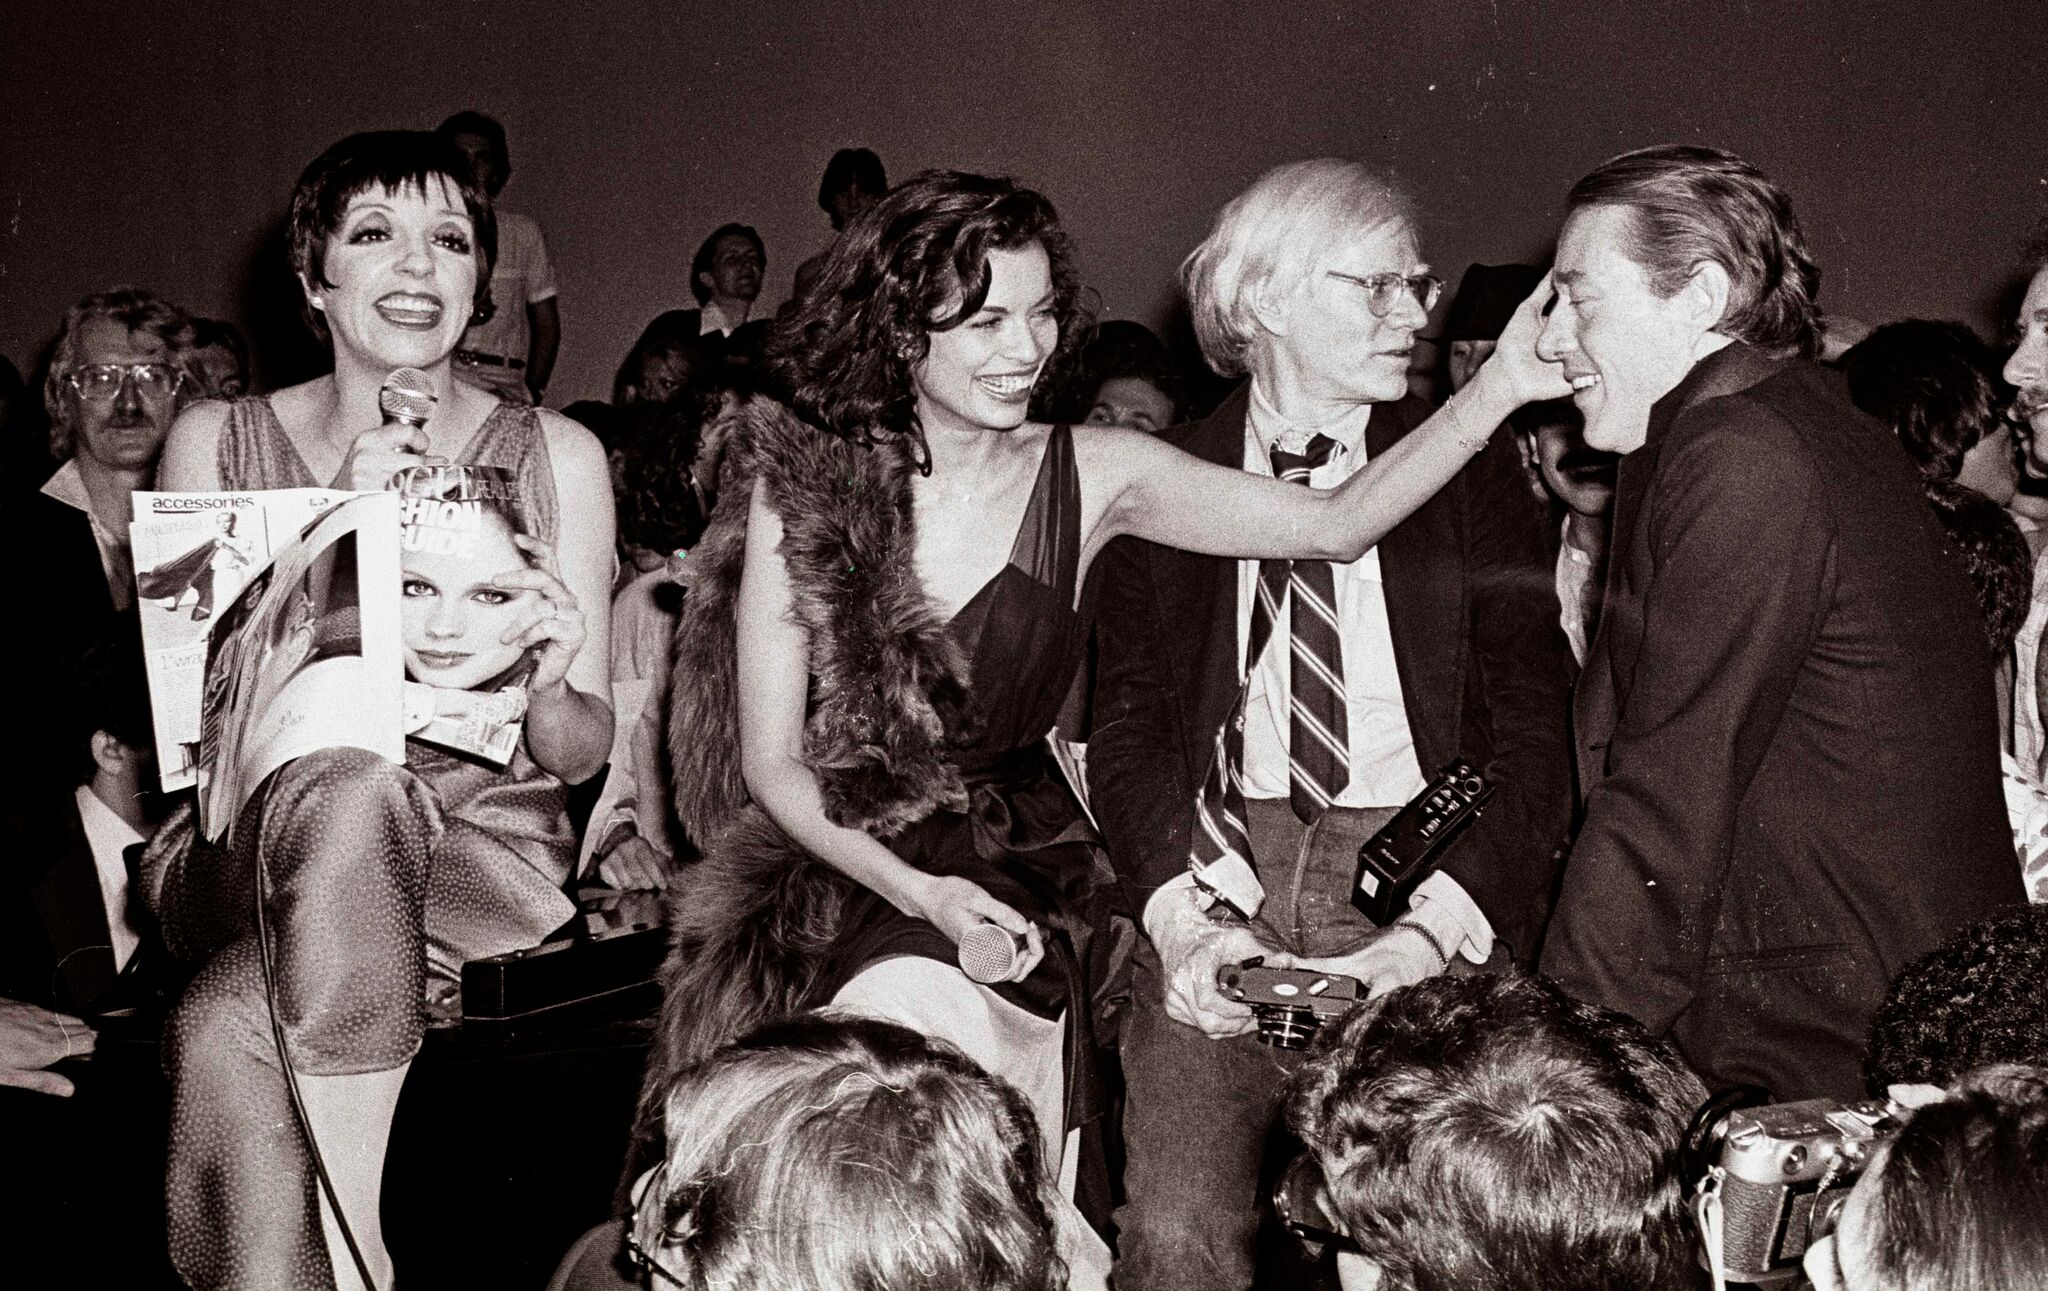 Liza Minelli, Bianca Jagger, Andy Warhol, and Halston at Studio 54. Photographer: Adam Schull.